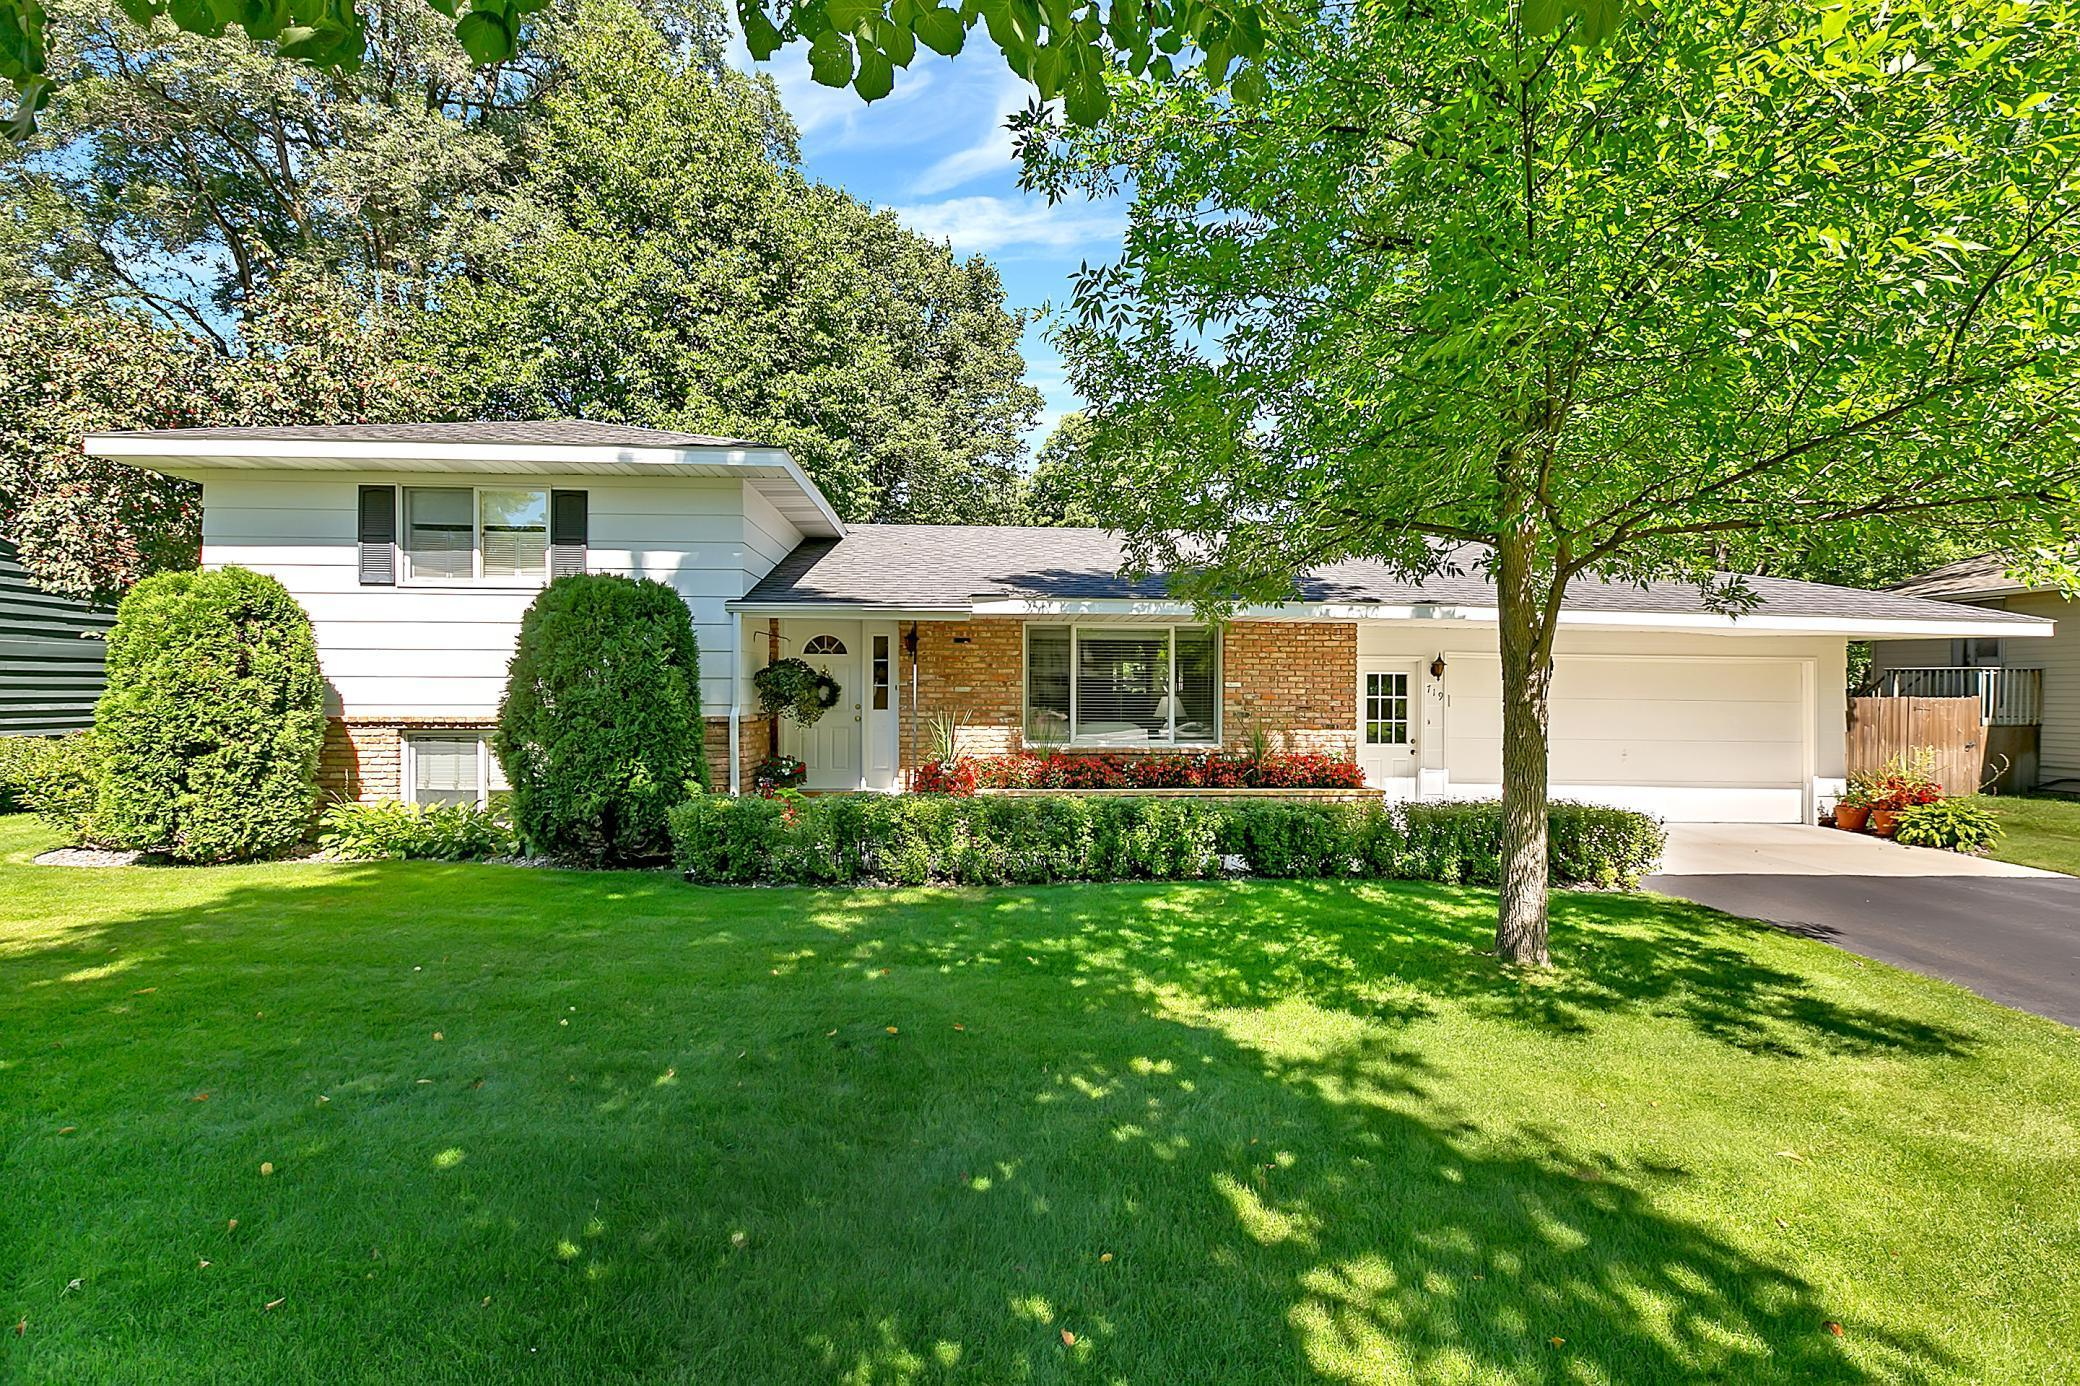 The owner's pride shows throughout this home and is move-in ready!  This one-owner home has great living spaces which include a spacious living room with gas fireplace and built-in shelves, cozy lower level family room, 4th level recreation room and an amazing screened porch which walks out to a wood patio!  Lots of storage space & crown molding throughout.  Cedar paneled family room, lower bedroom & rec room.  Beautifully manicured yard with in-ground sprinkler system, garden & mature trees.  Many updates including a newer furnace, Speed Queen washer & dryer, dishwasher, gas stove, garage door opener, attic insulation, carpet and exterior paint. Conveniently located near many city amenities.  A great place to call home!